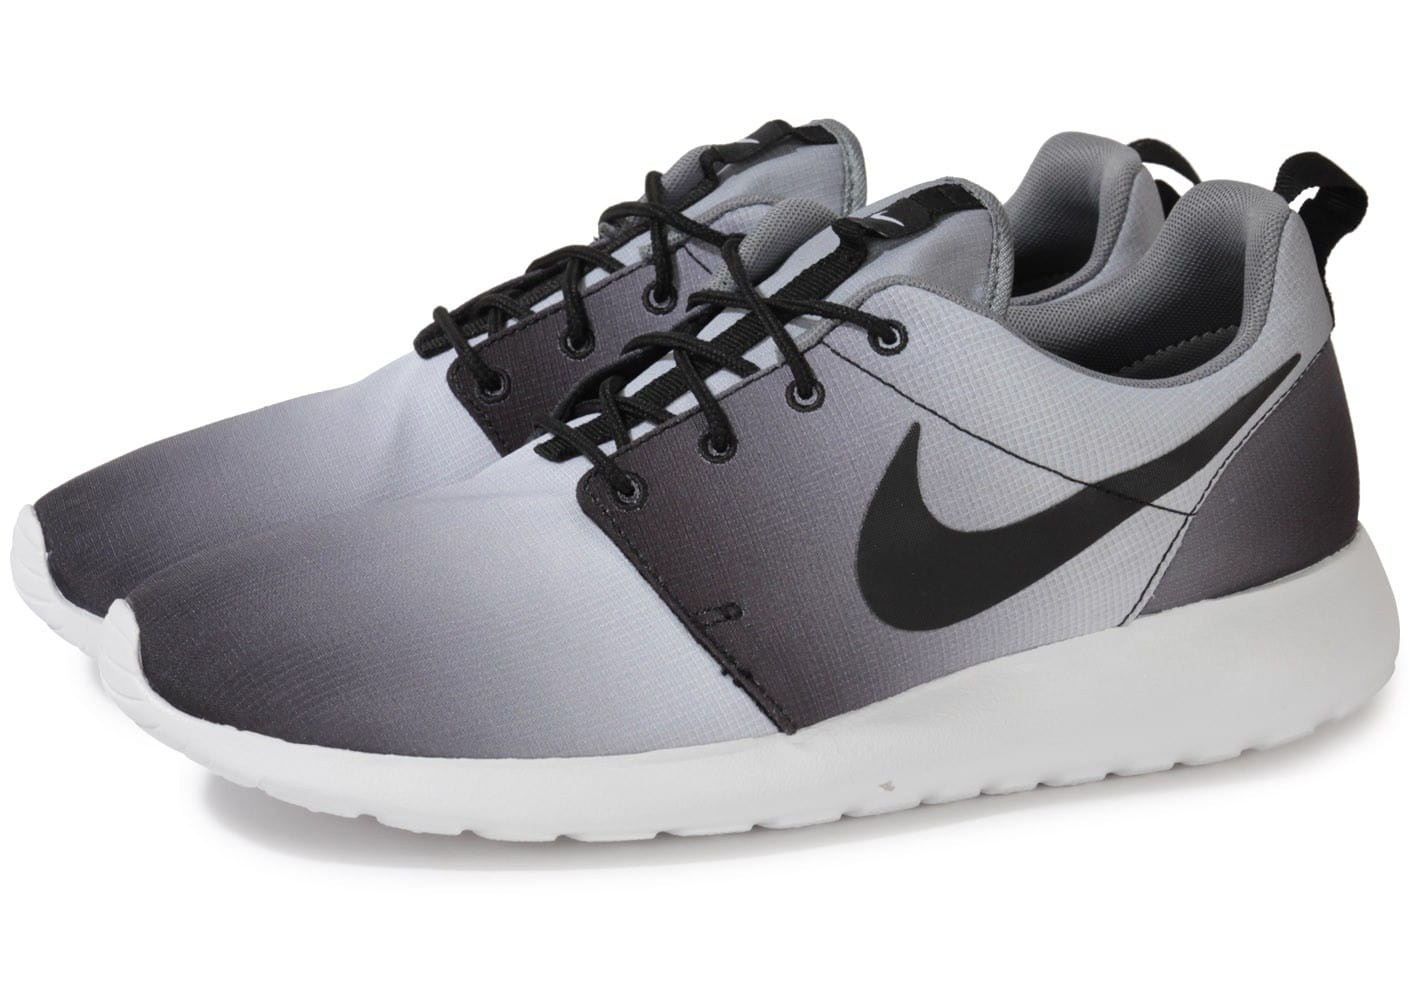 Cliquez pour zoomer Chaussures Nike ROSHE RUN PRINT FADED NOIR BLANC vue .